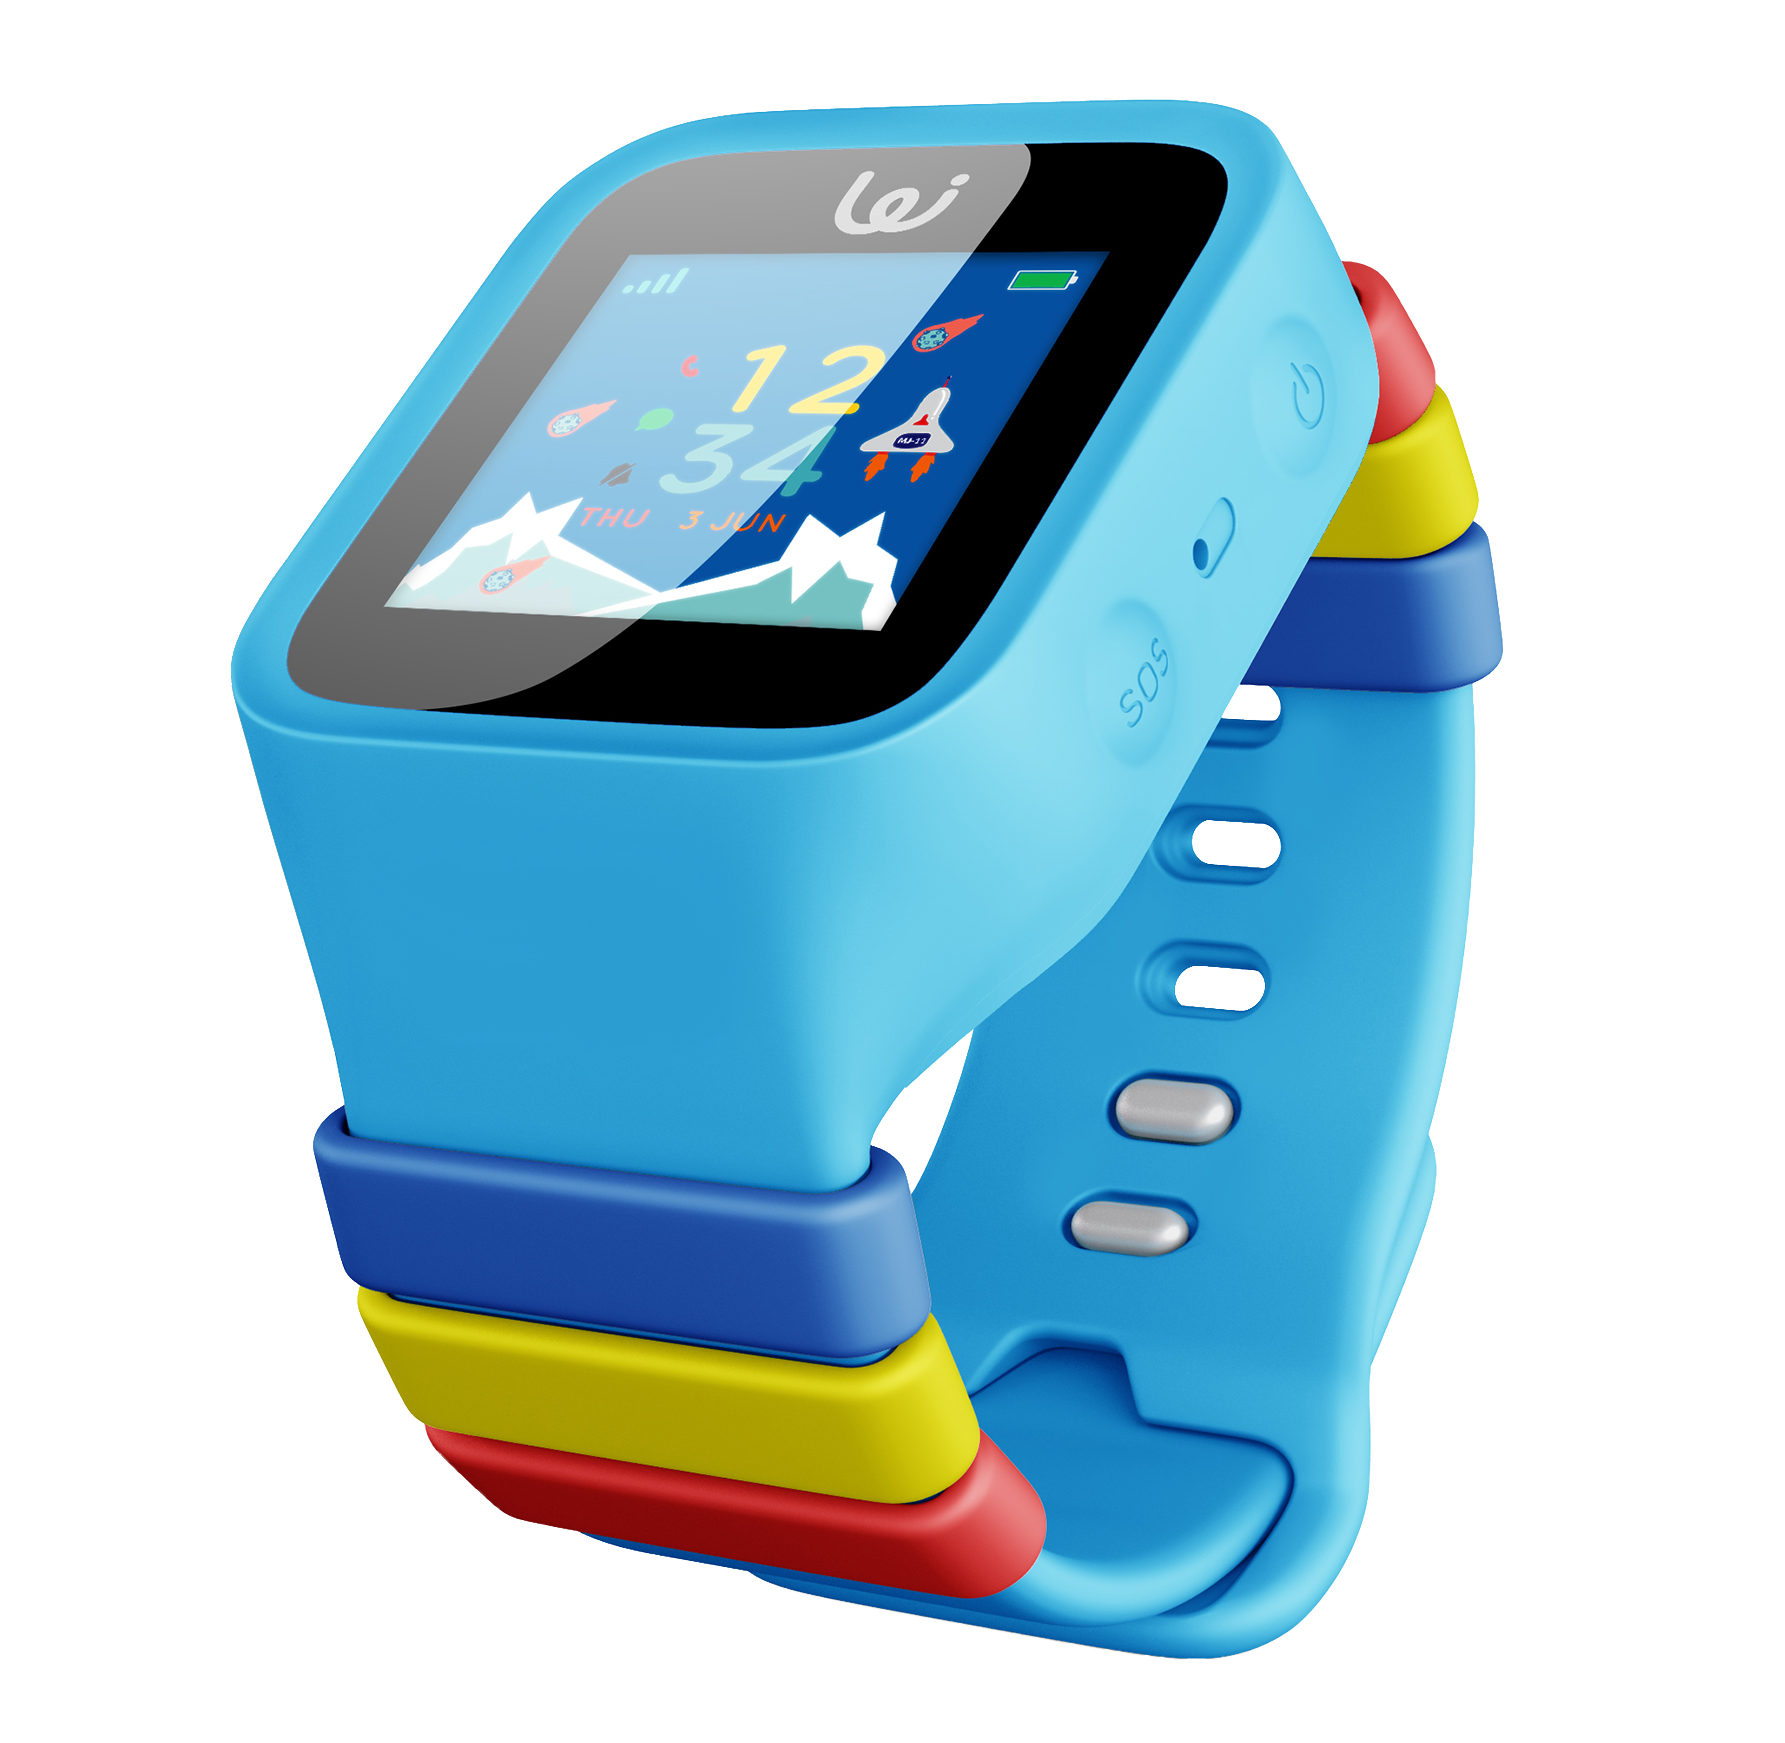 The iGPS Wizard Watch: Trusted by Parents, Loved by Kids ...